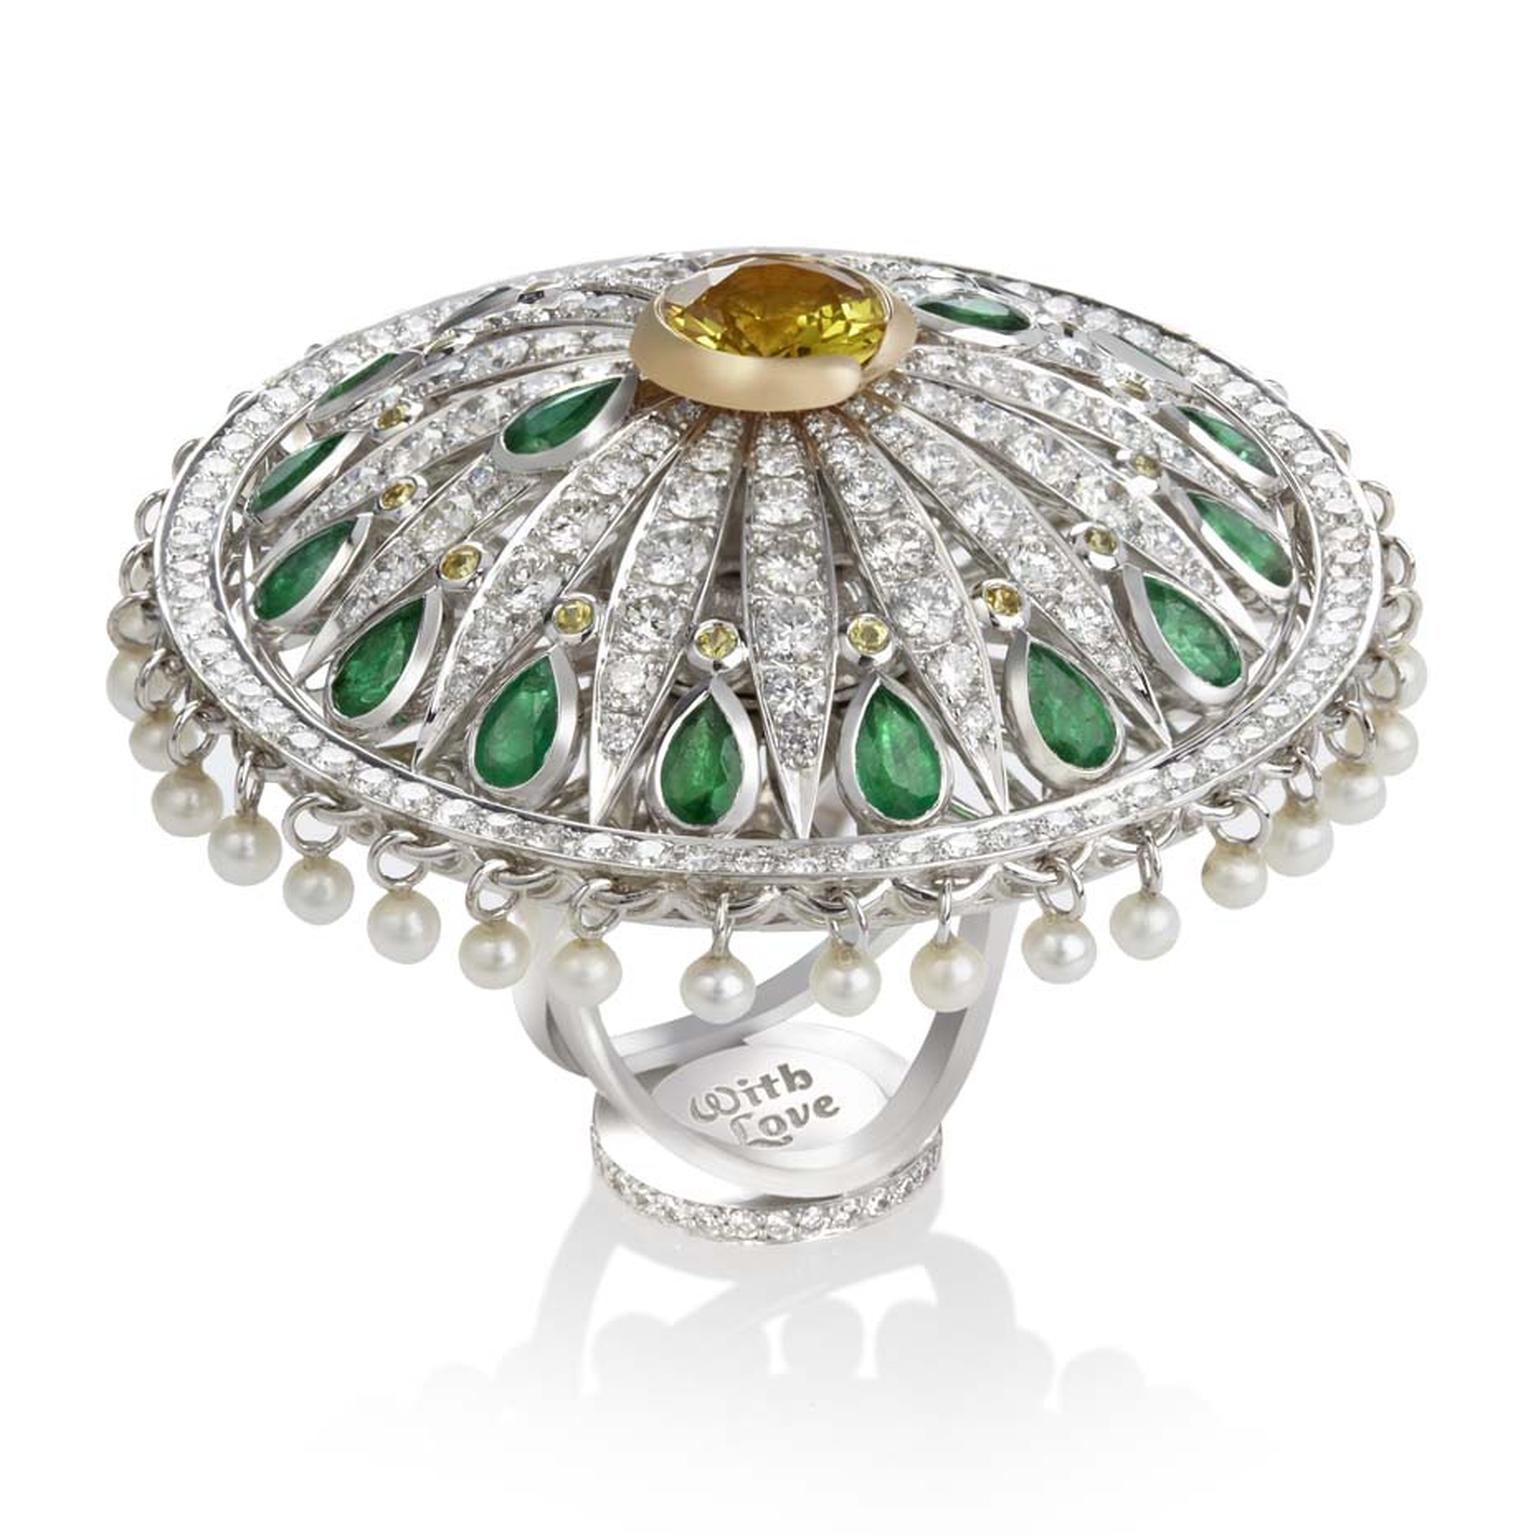 Sybarite Dancing Dolls collection white and yellow gold ring with emeralds, diamonds, pearls and a yellow sapphire.